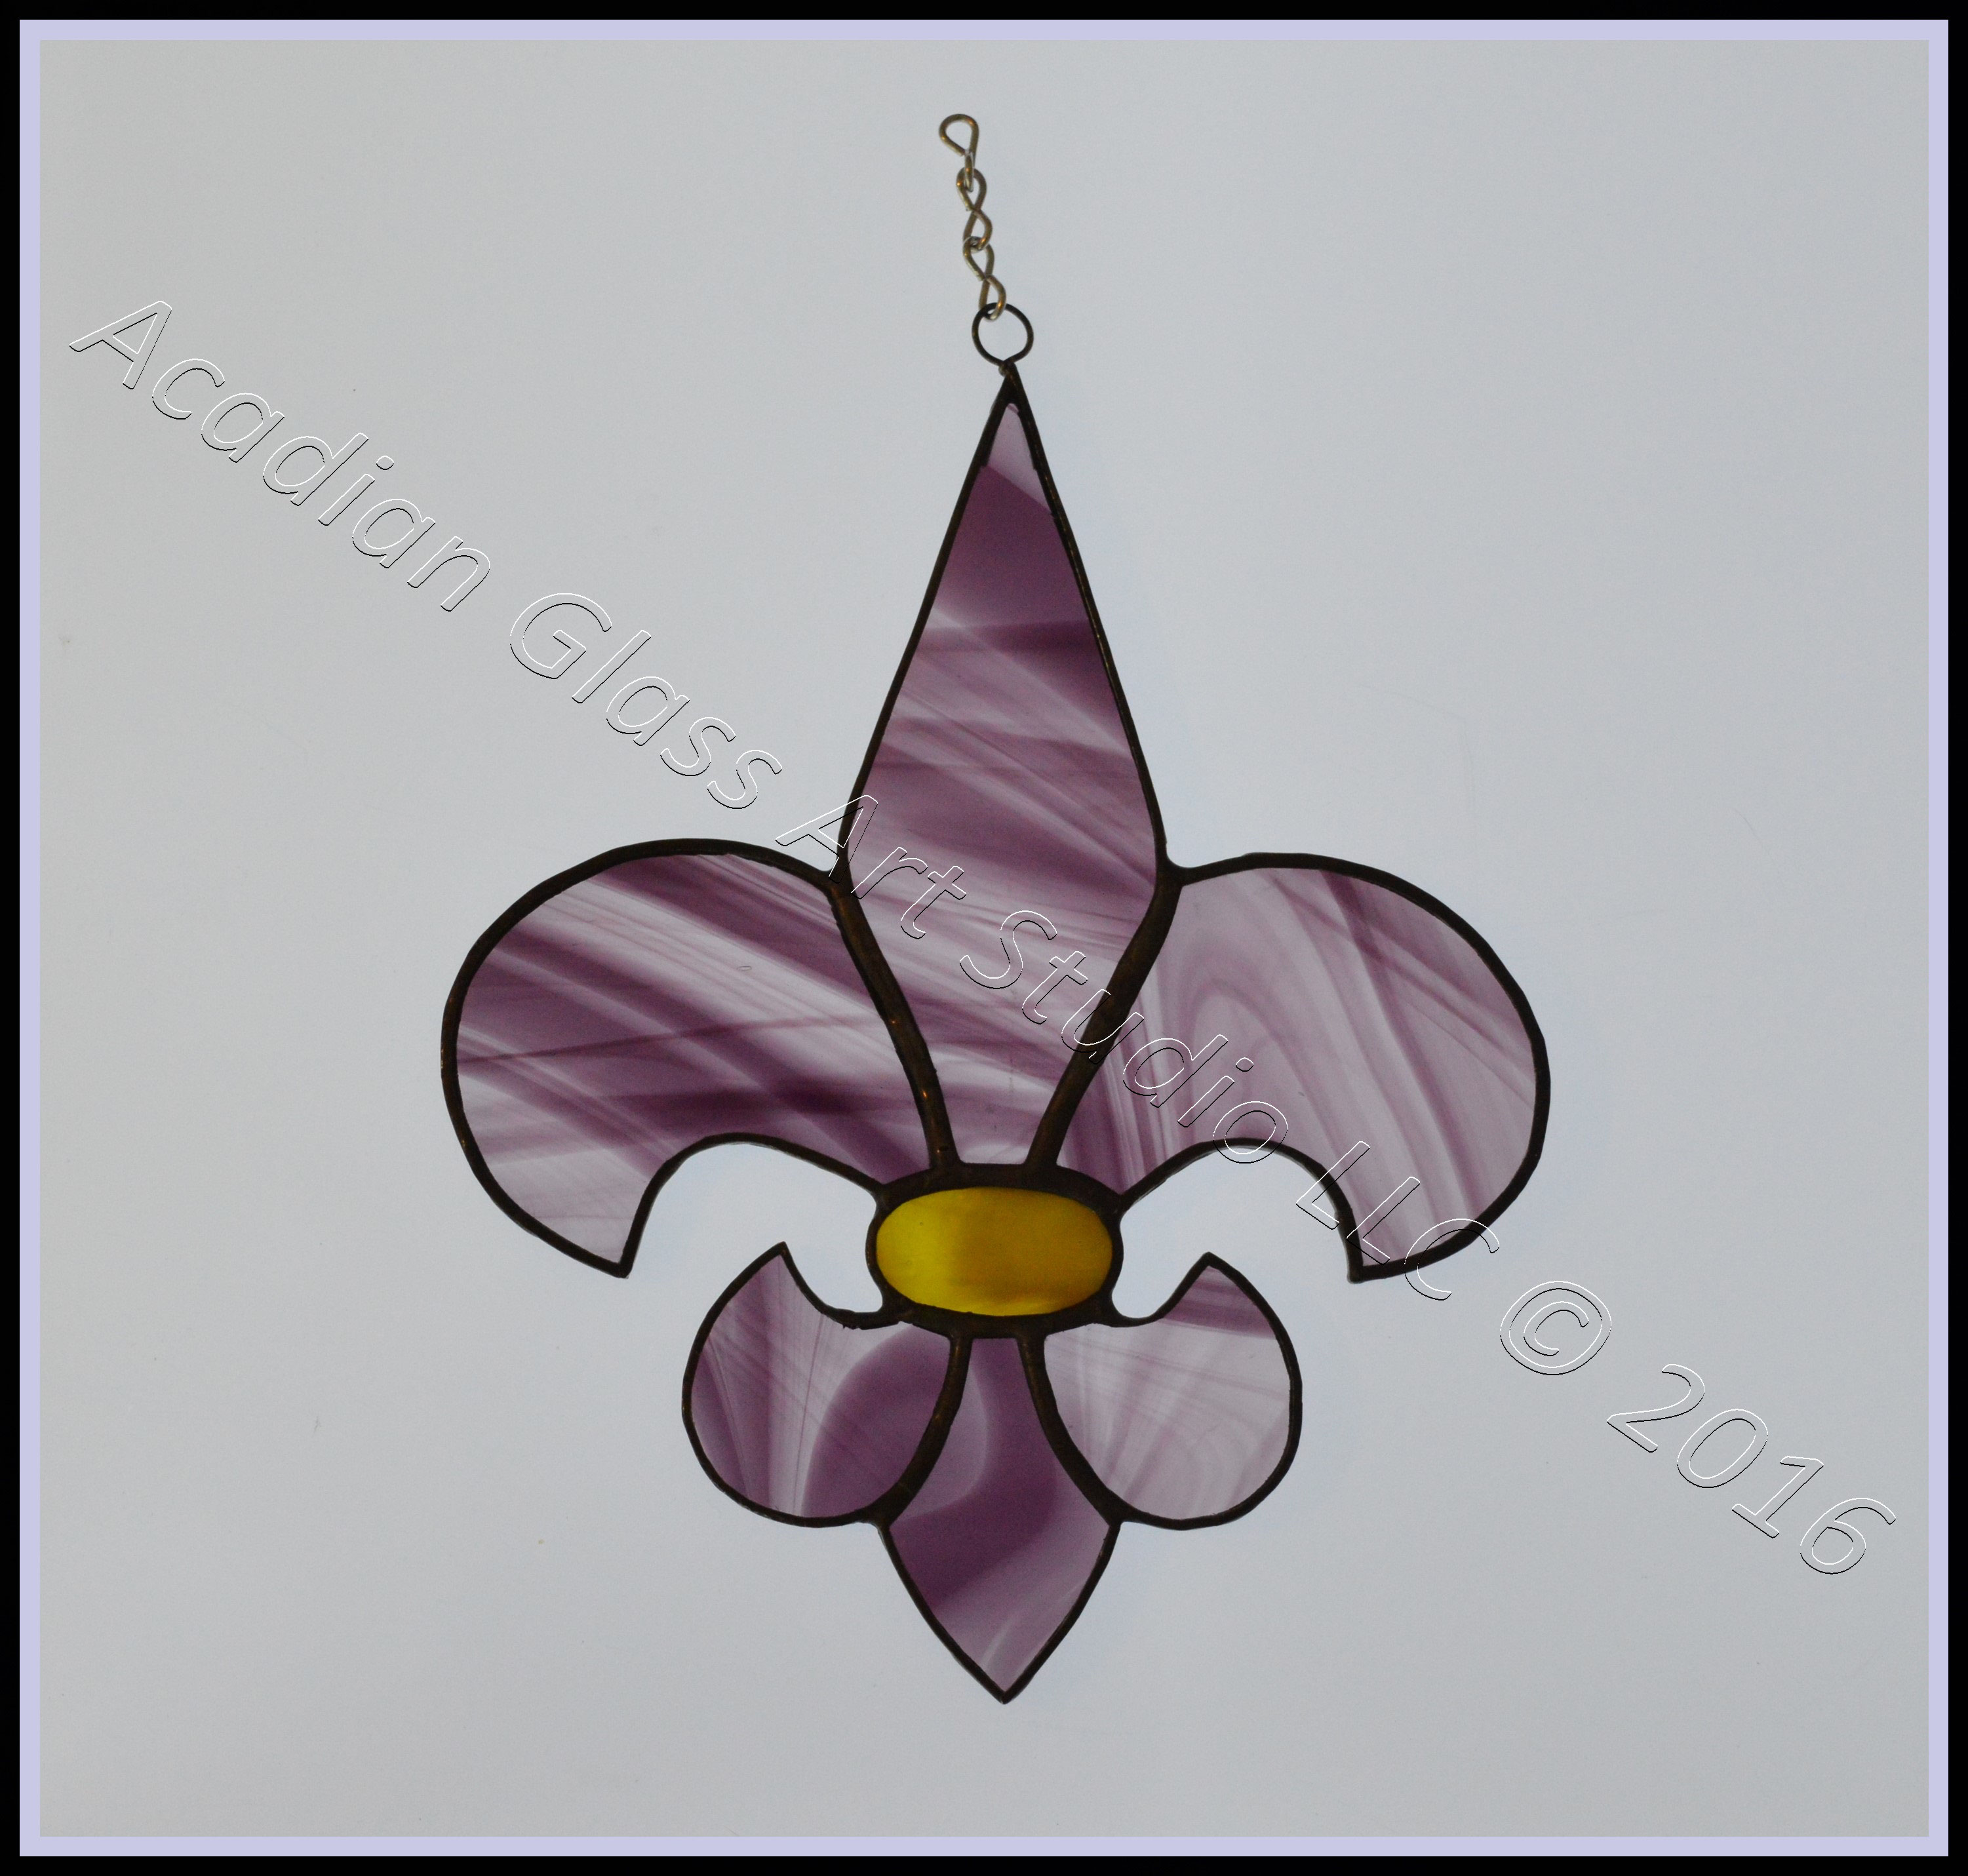 Stained Glass Suncatchers Picture Gallery - Acadian Glass Art Studio LLC